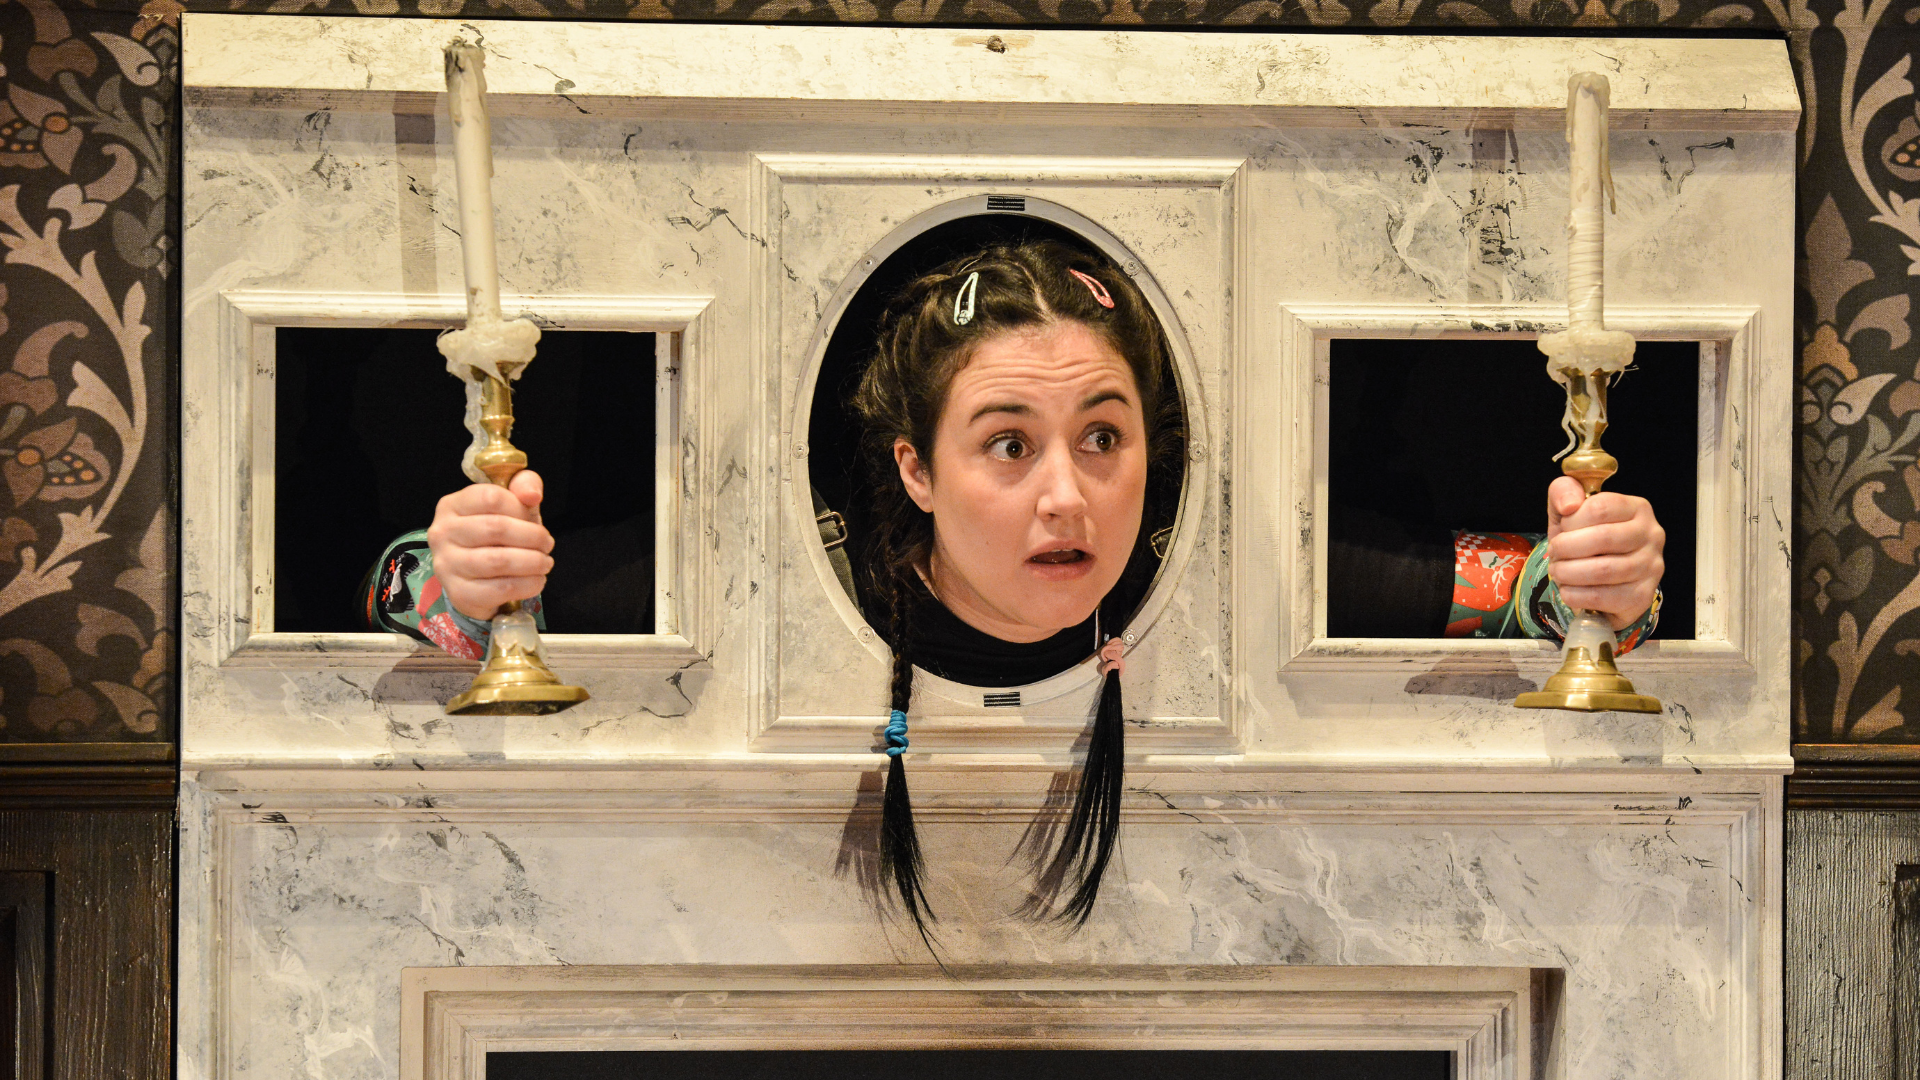 The Play That Goes Wrong Production Shot: A close up of Annie (Laura Kirman) who is stuck in a fireplace mantle piece, with her head through the middle hole and her arms through holes either side of her holding candlesticks.